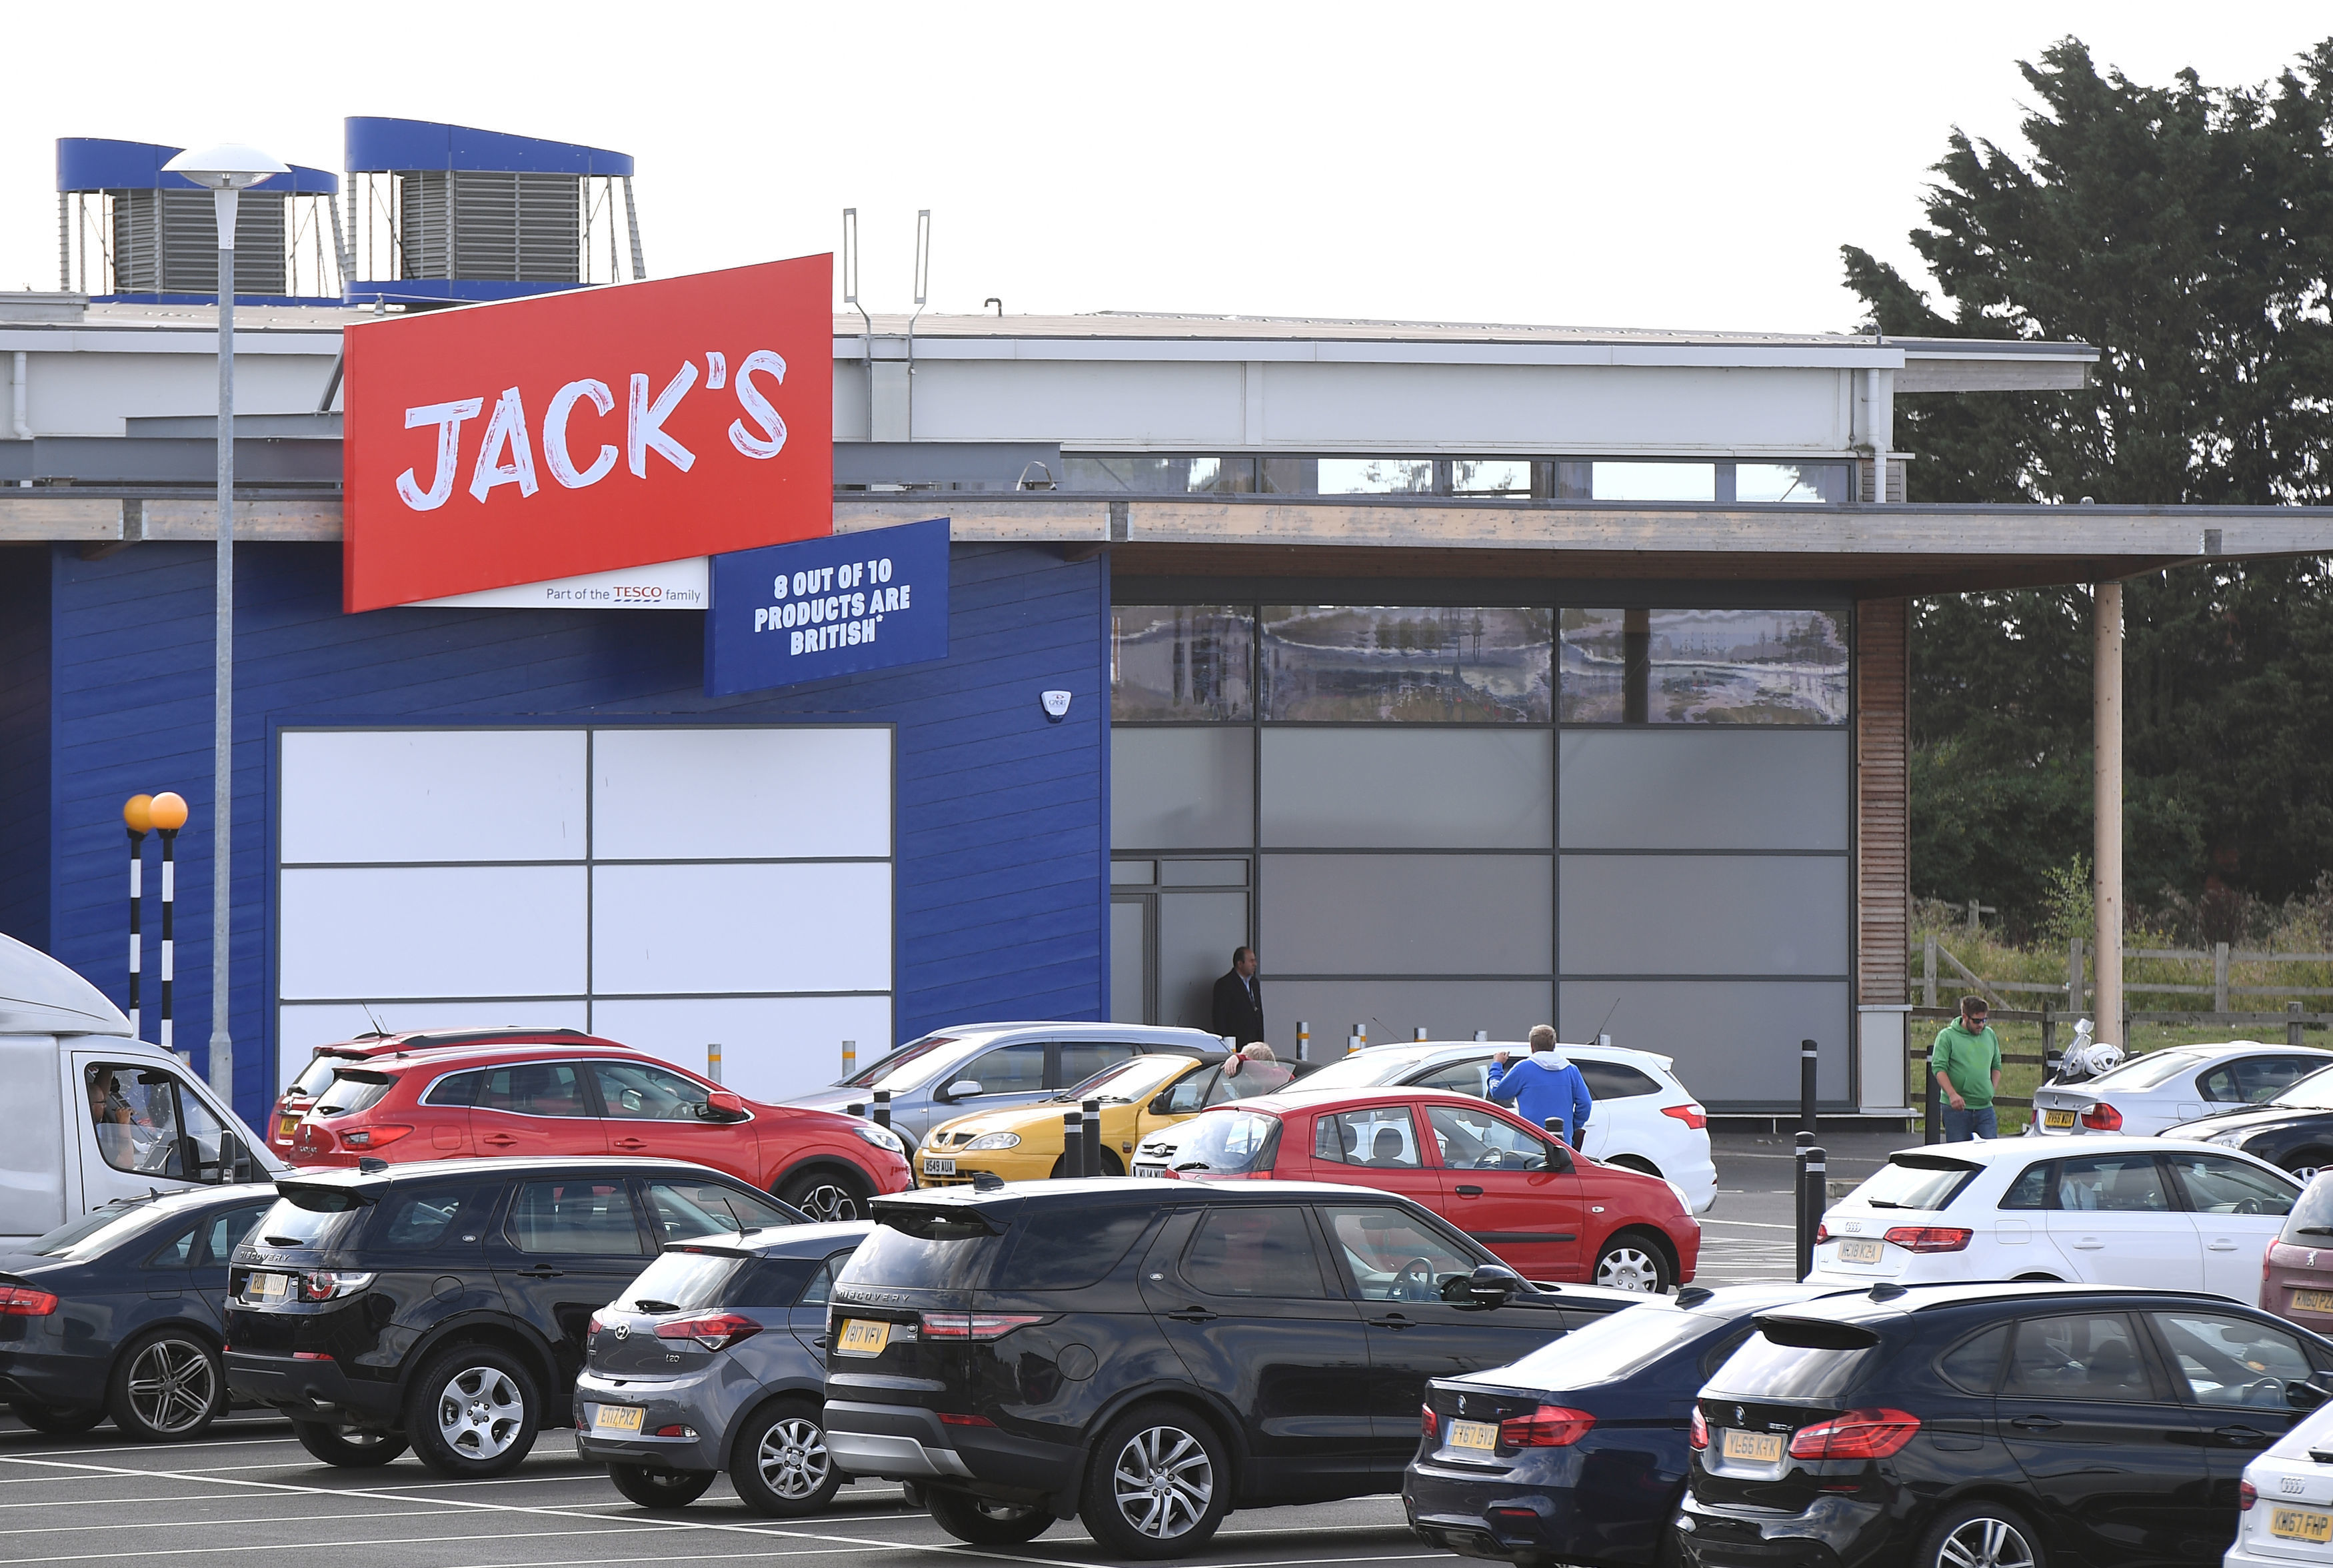 Tesco launches new store Jack's to tackle Lidl and Aldi